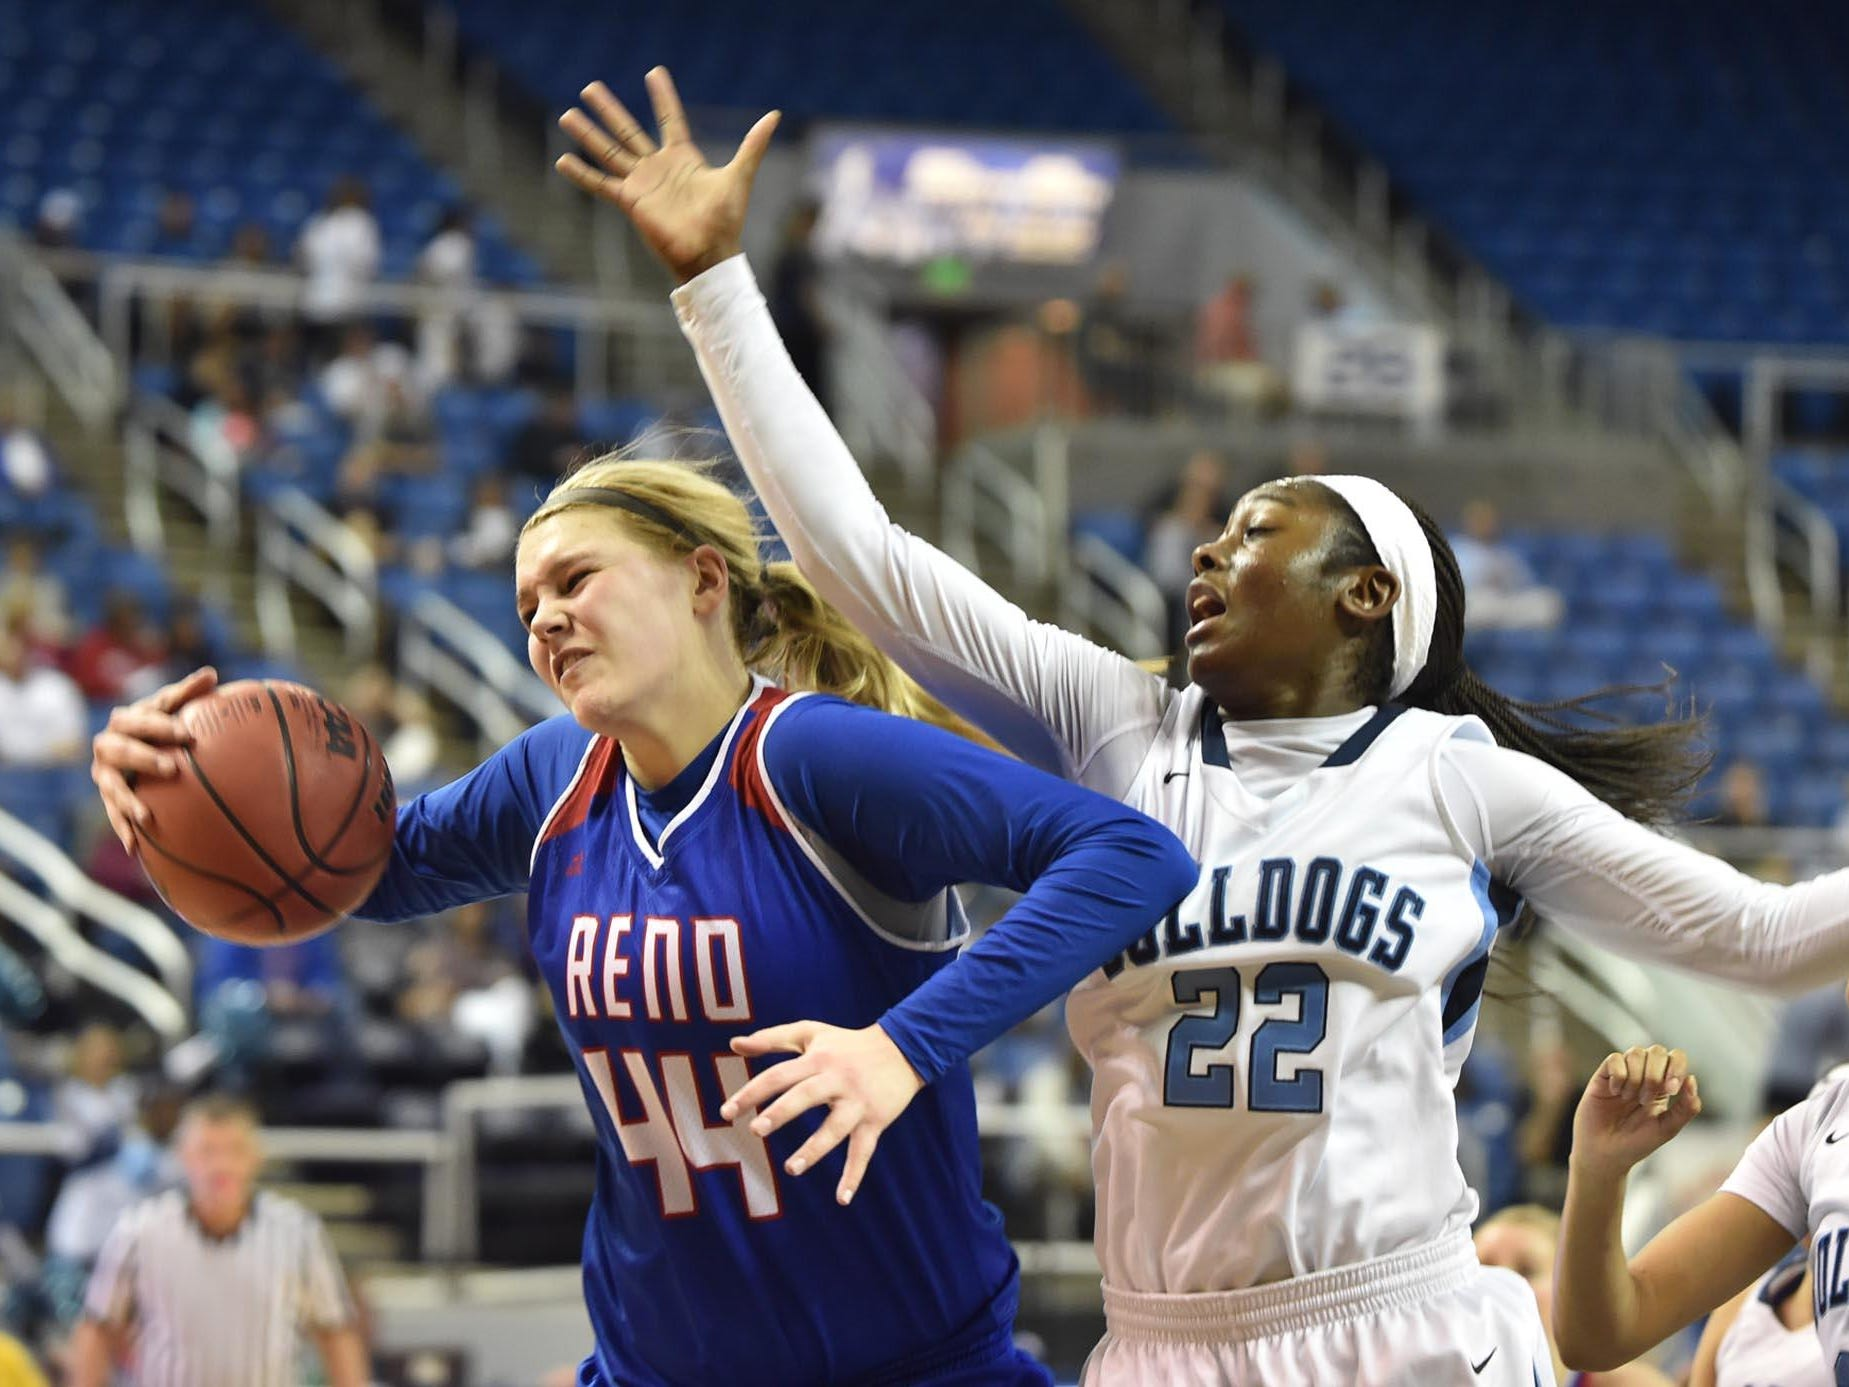 Reno's Mallory McGwire grabs a rebound against Centennial during the Division I state tournament in Reno.